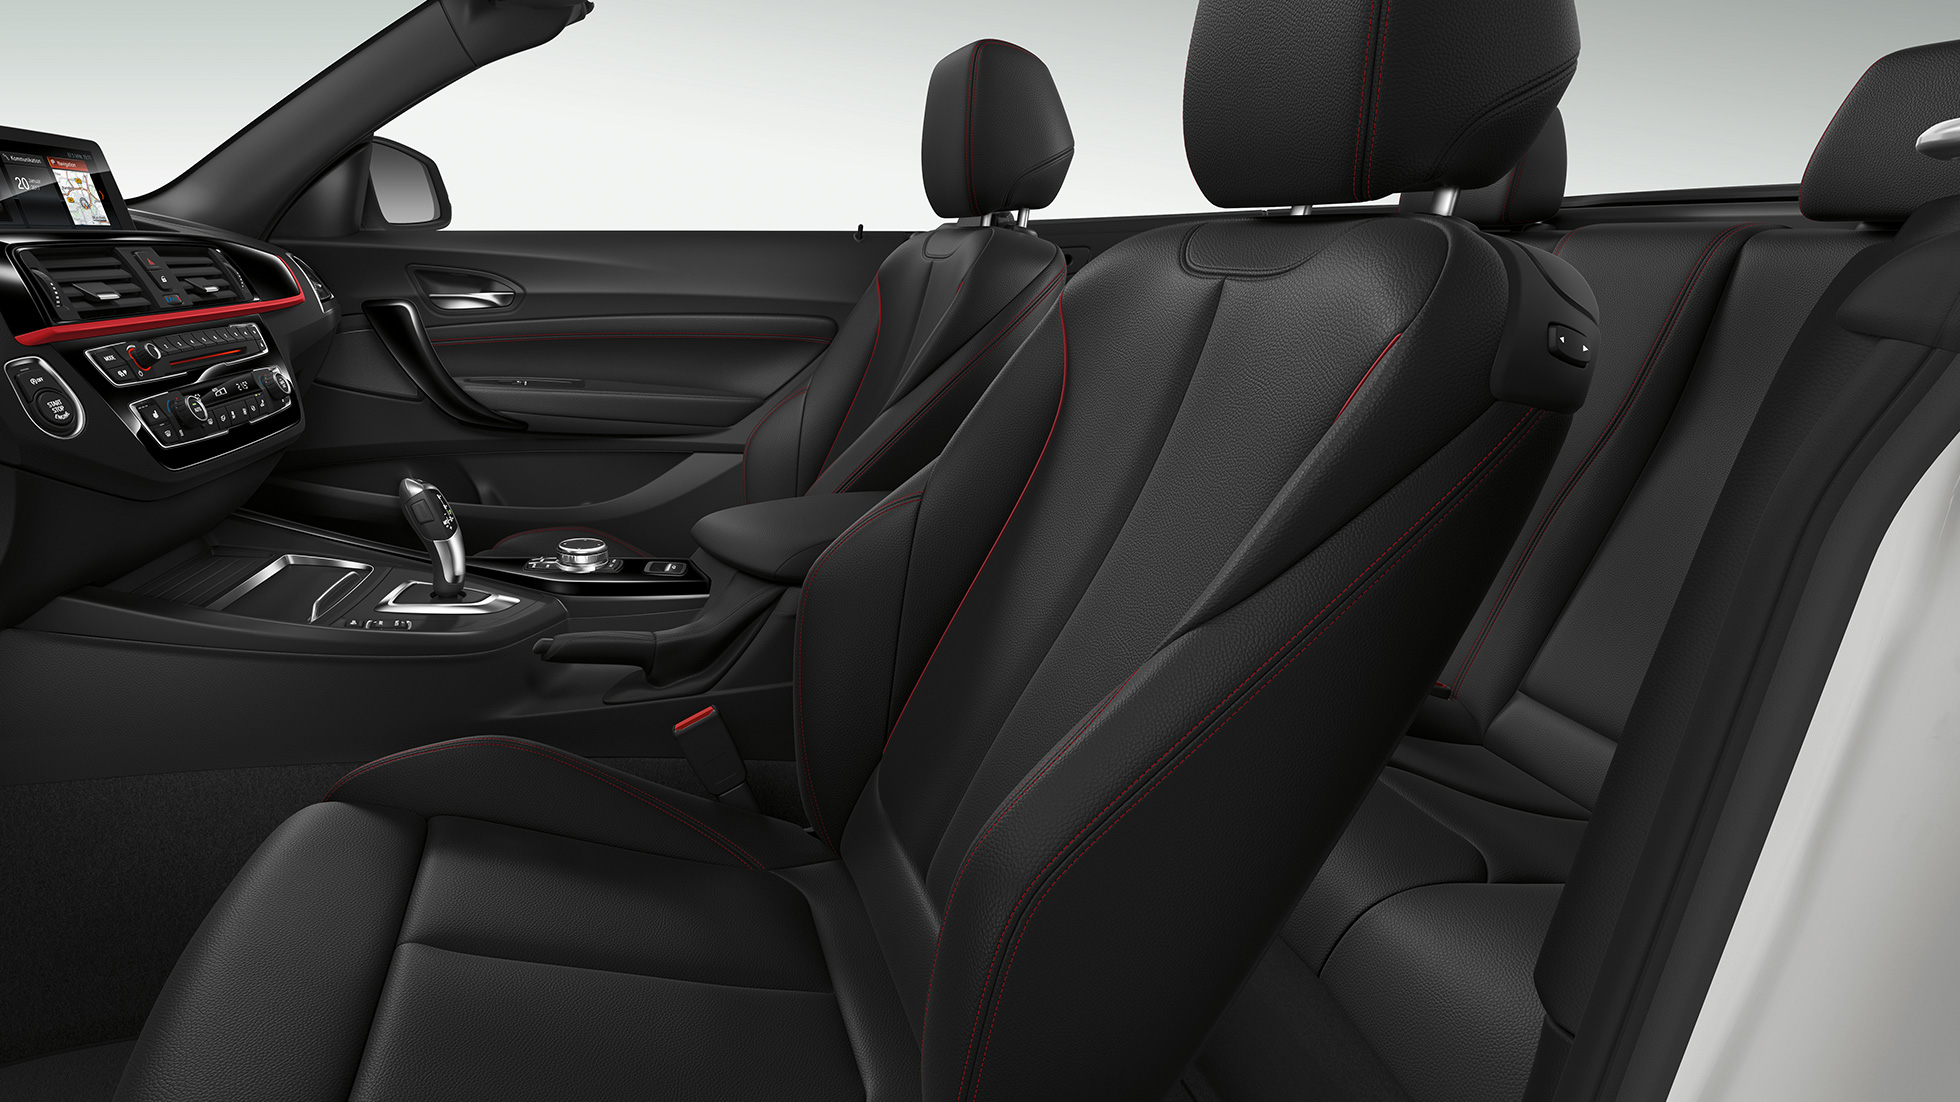 BMW 2 Series Convertible, Model Sport Line interior